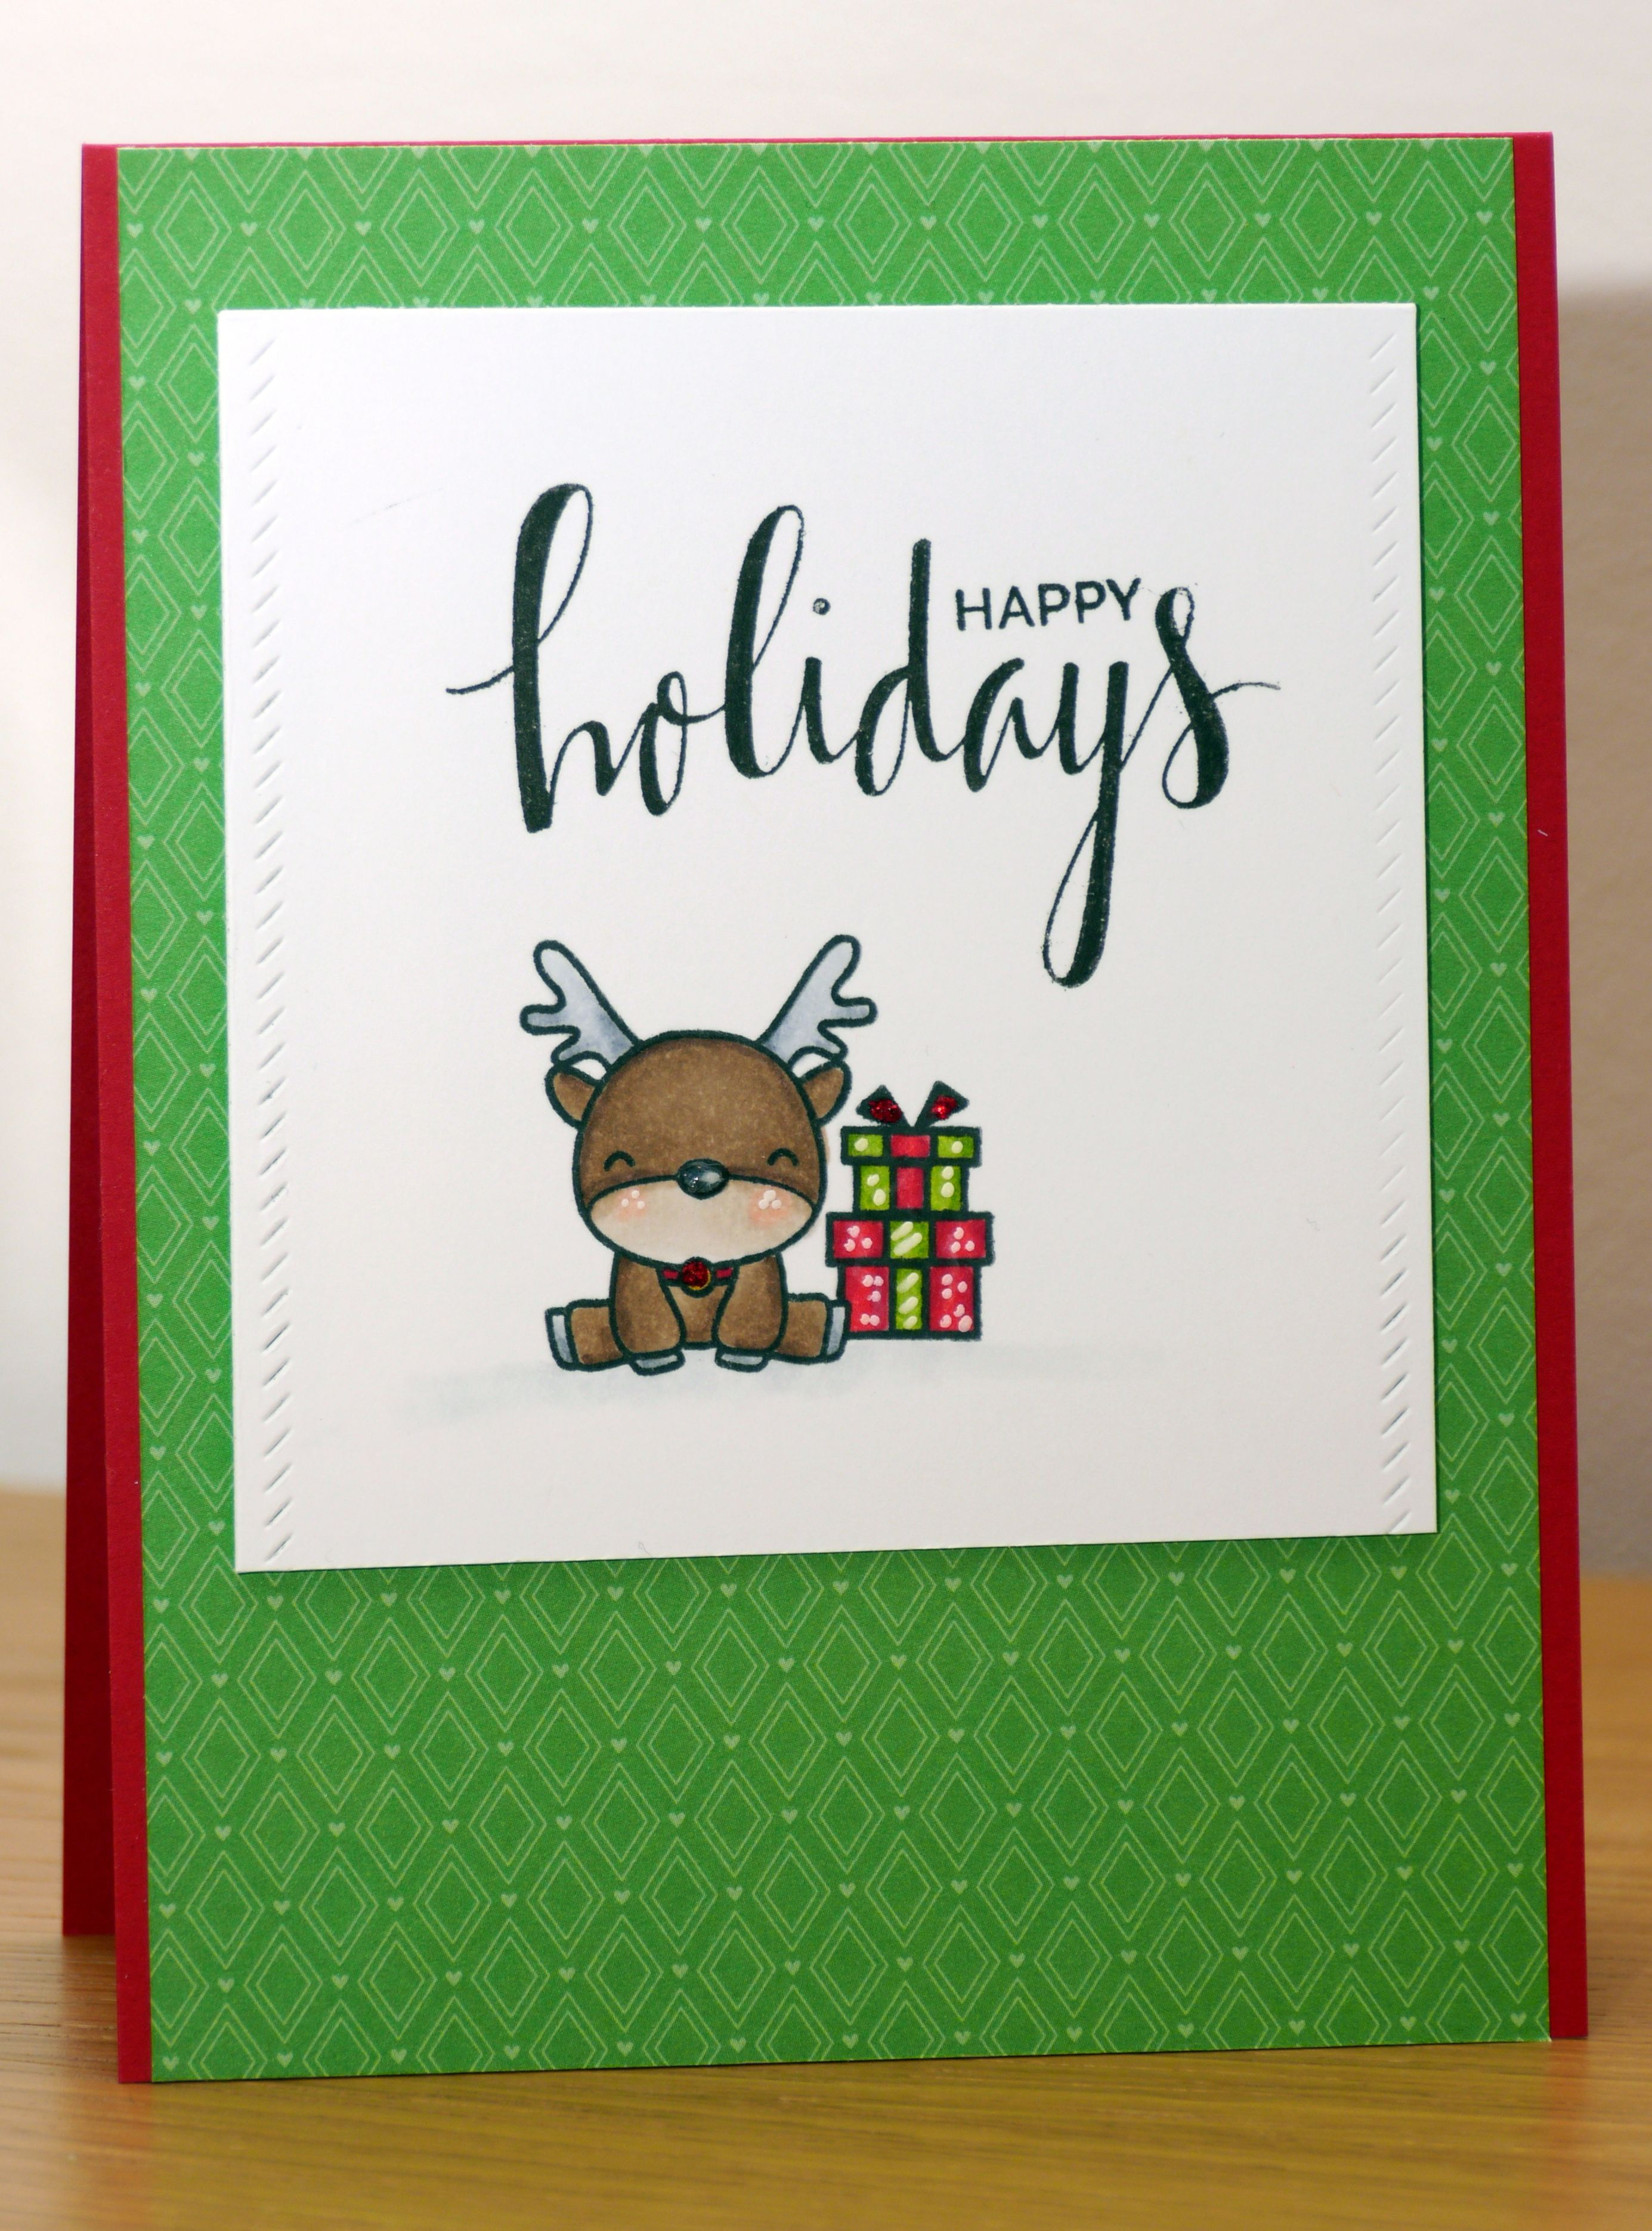 mama elephant reindeer games and my favorite things hand